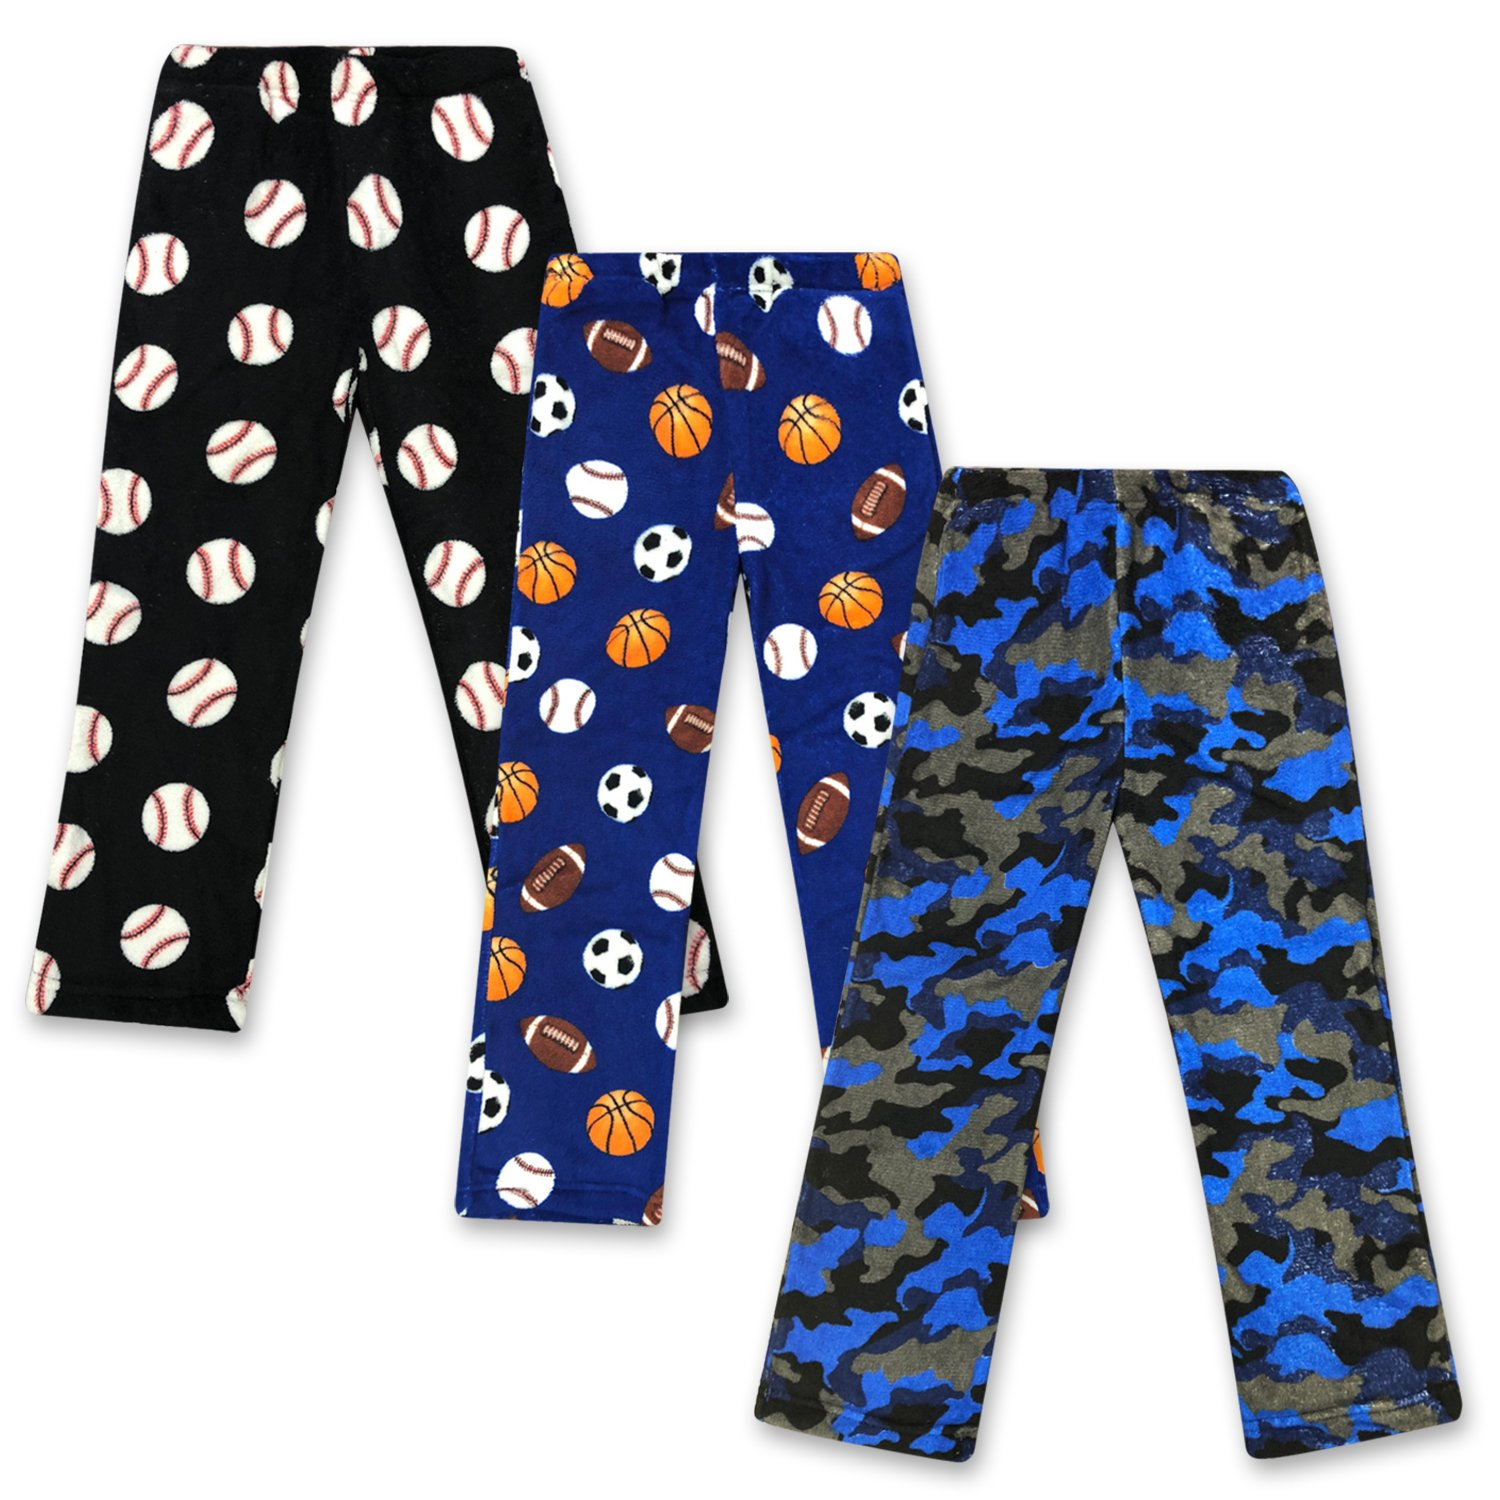 Real Essentials Plush Pajama Bottoms for Boys - Pack of 3 -Set 4 - Size 5/6